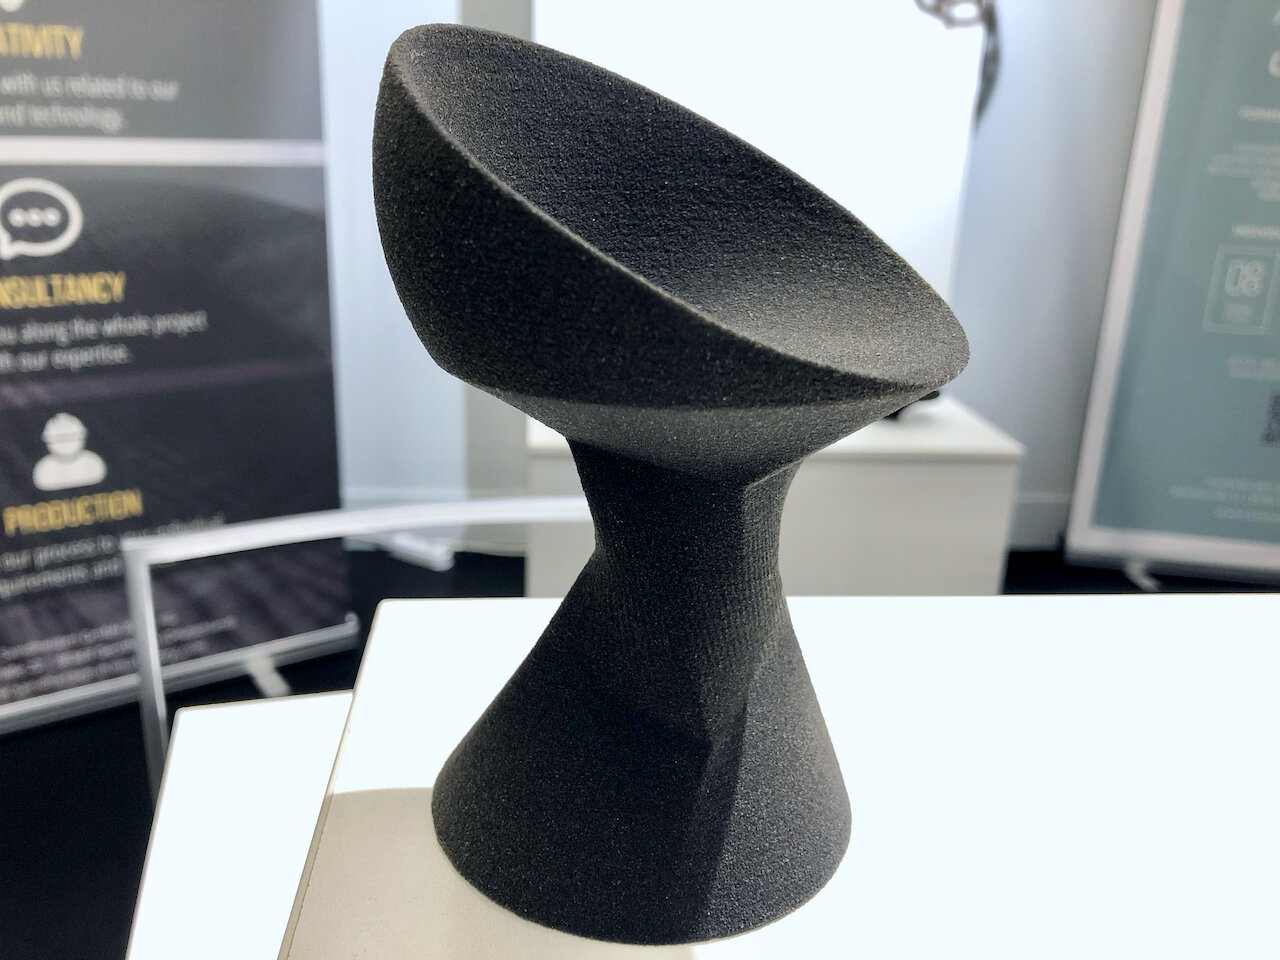 Another artistic 3D print by Sandhelden [Source: Fabbaloo]